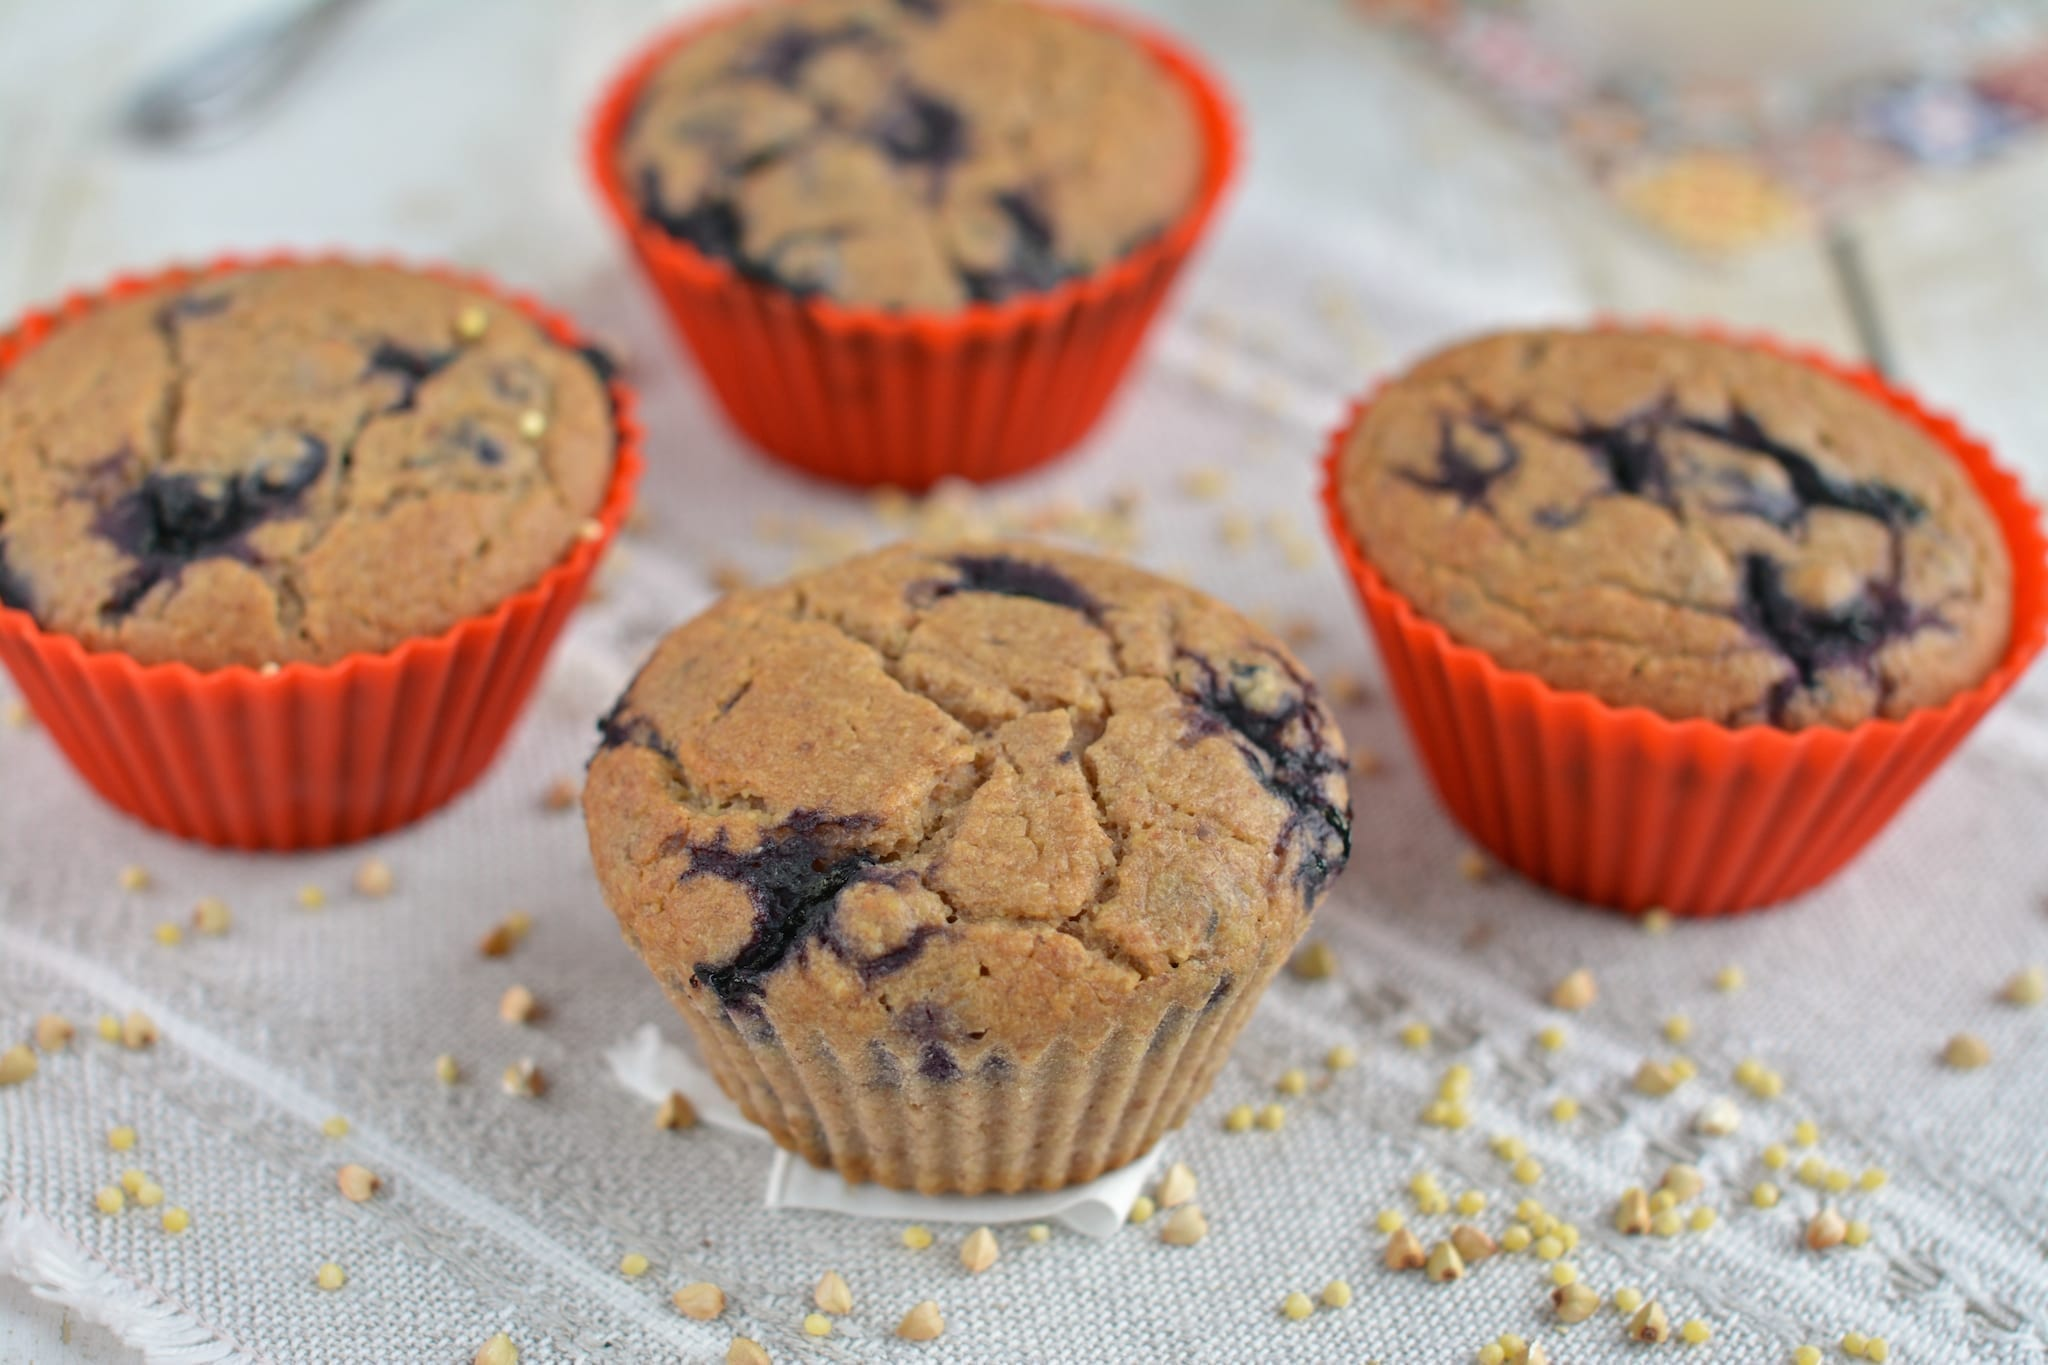 Millet-Buckwheat Groat Muffin Breads with Blueberries